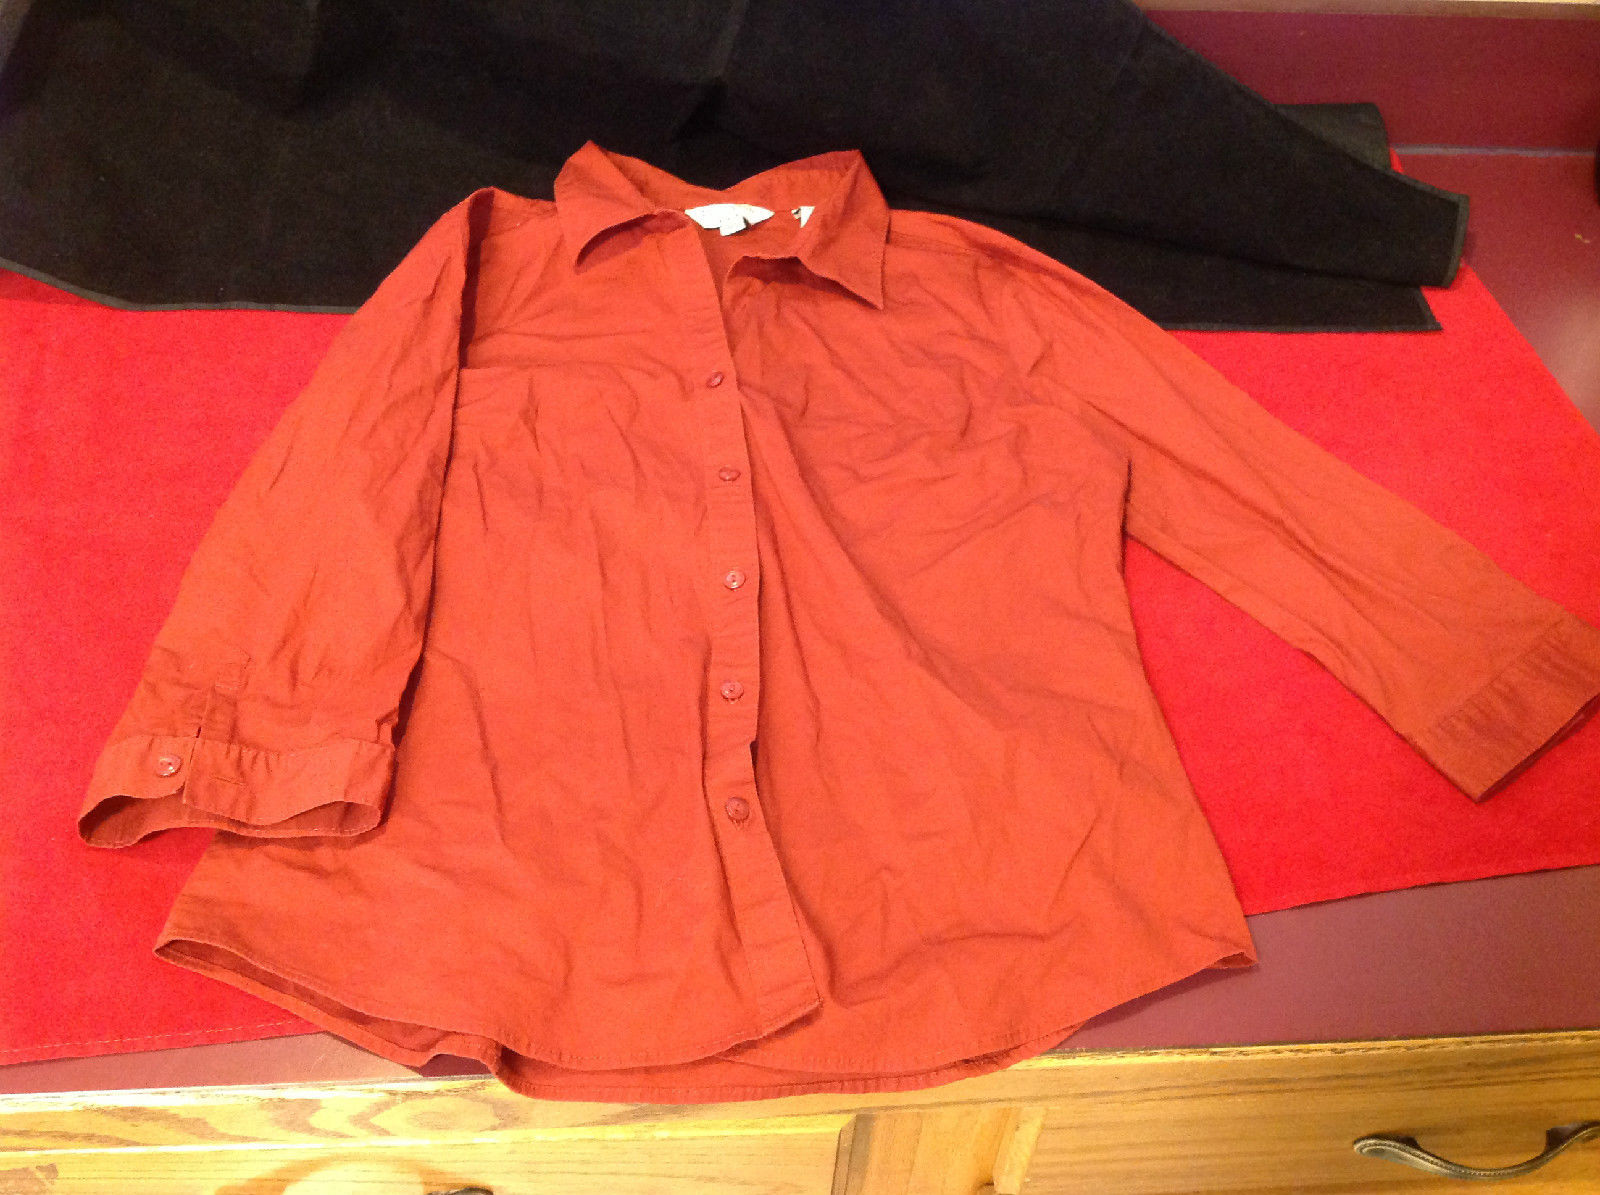 Covington Stretch Wine Colored Blouse Three Quarter Sleeves Button Cuffs Size 12